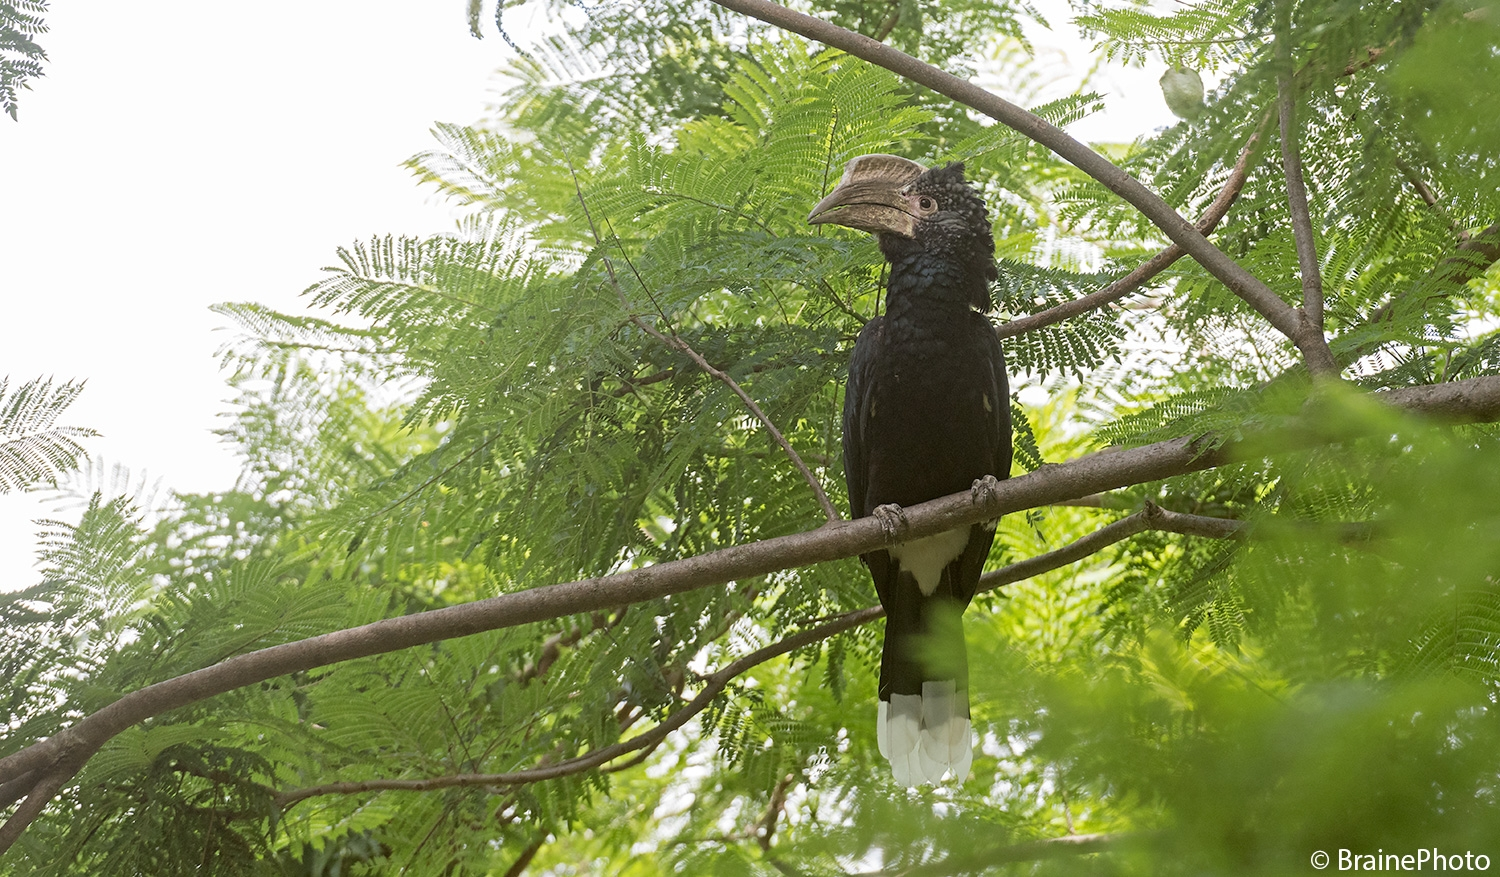 Our Ethiopian birding and photography tours offer an unforgettable experience and a great opportunity to view Ethiopia's magical wildlife, such as the Silvery-cheeked Hornbill